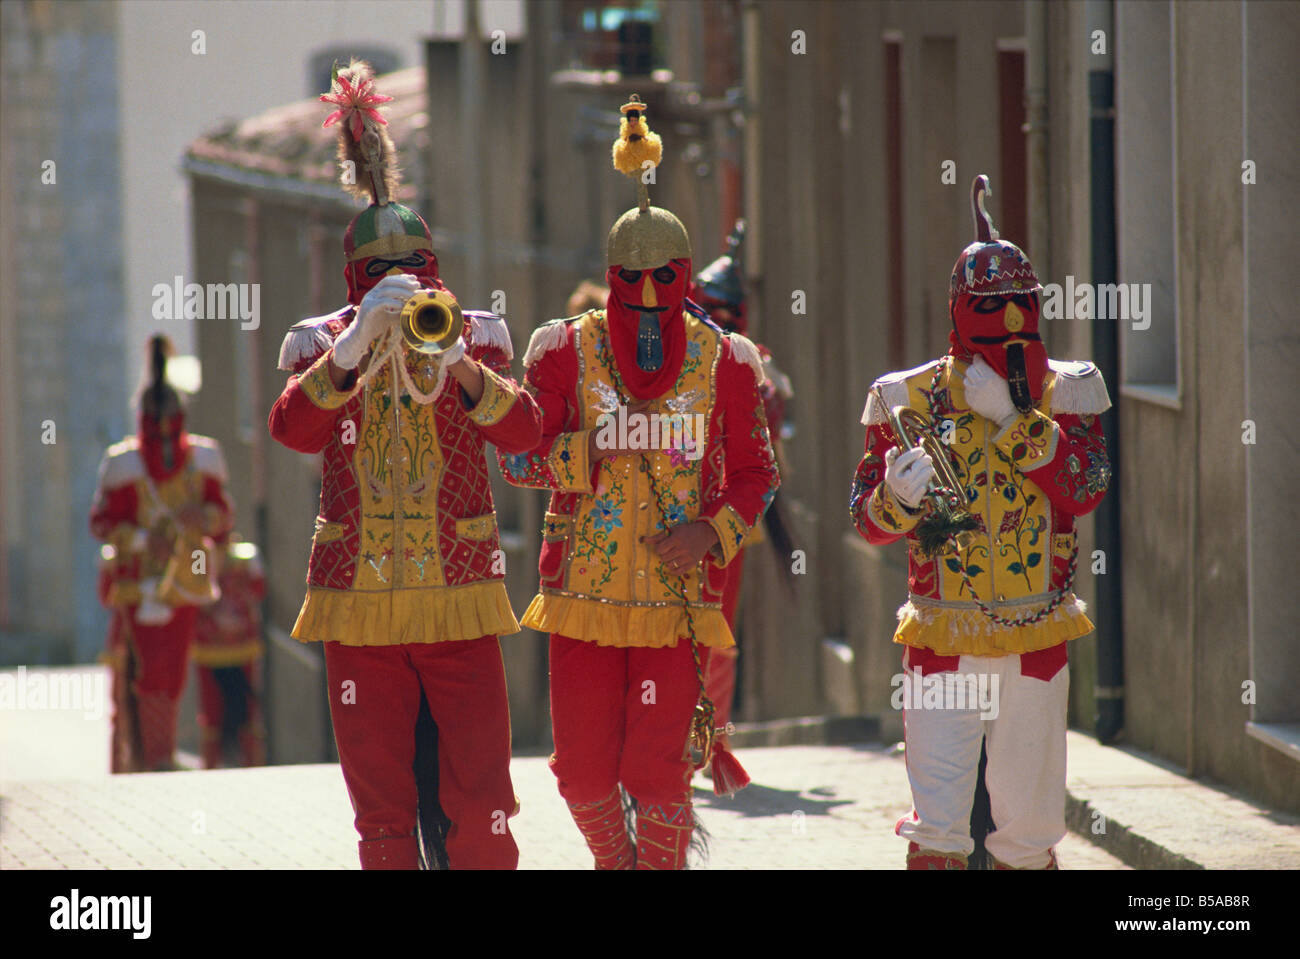 Trumpet players in red costumes and horse tails celebrate the Feast of the Jews, Sicily, Italy - Stock Image